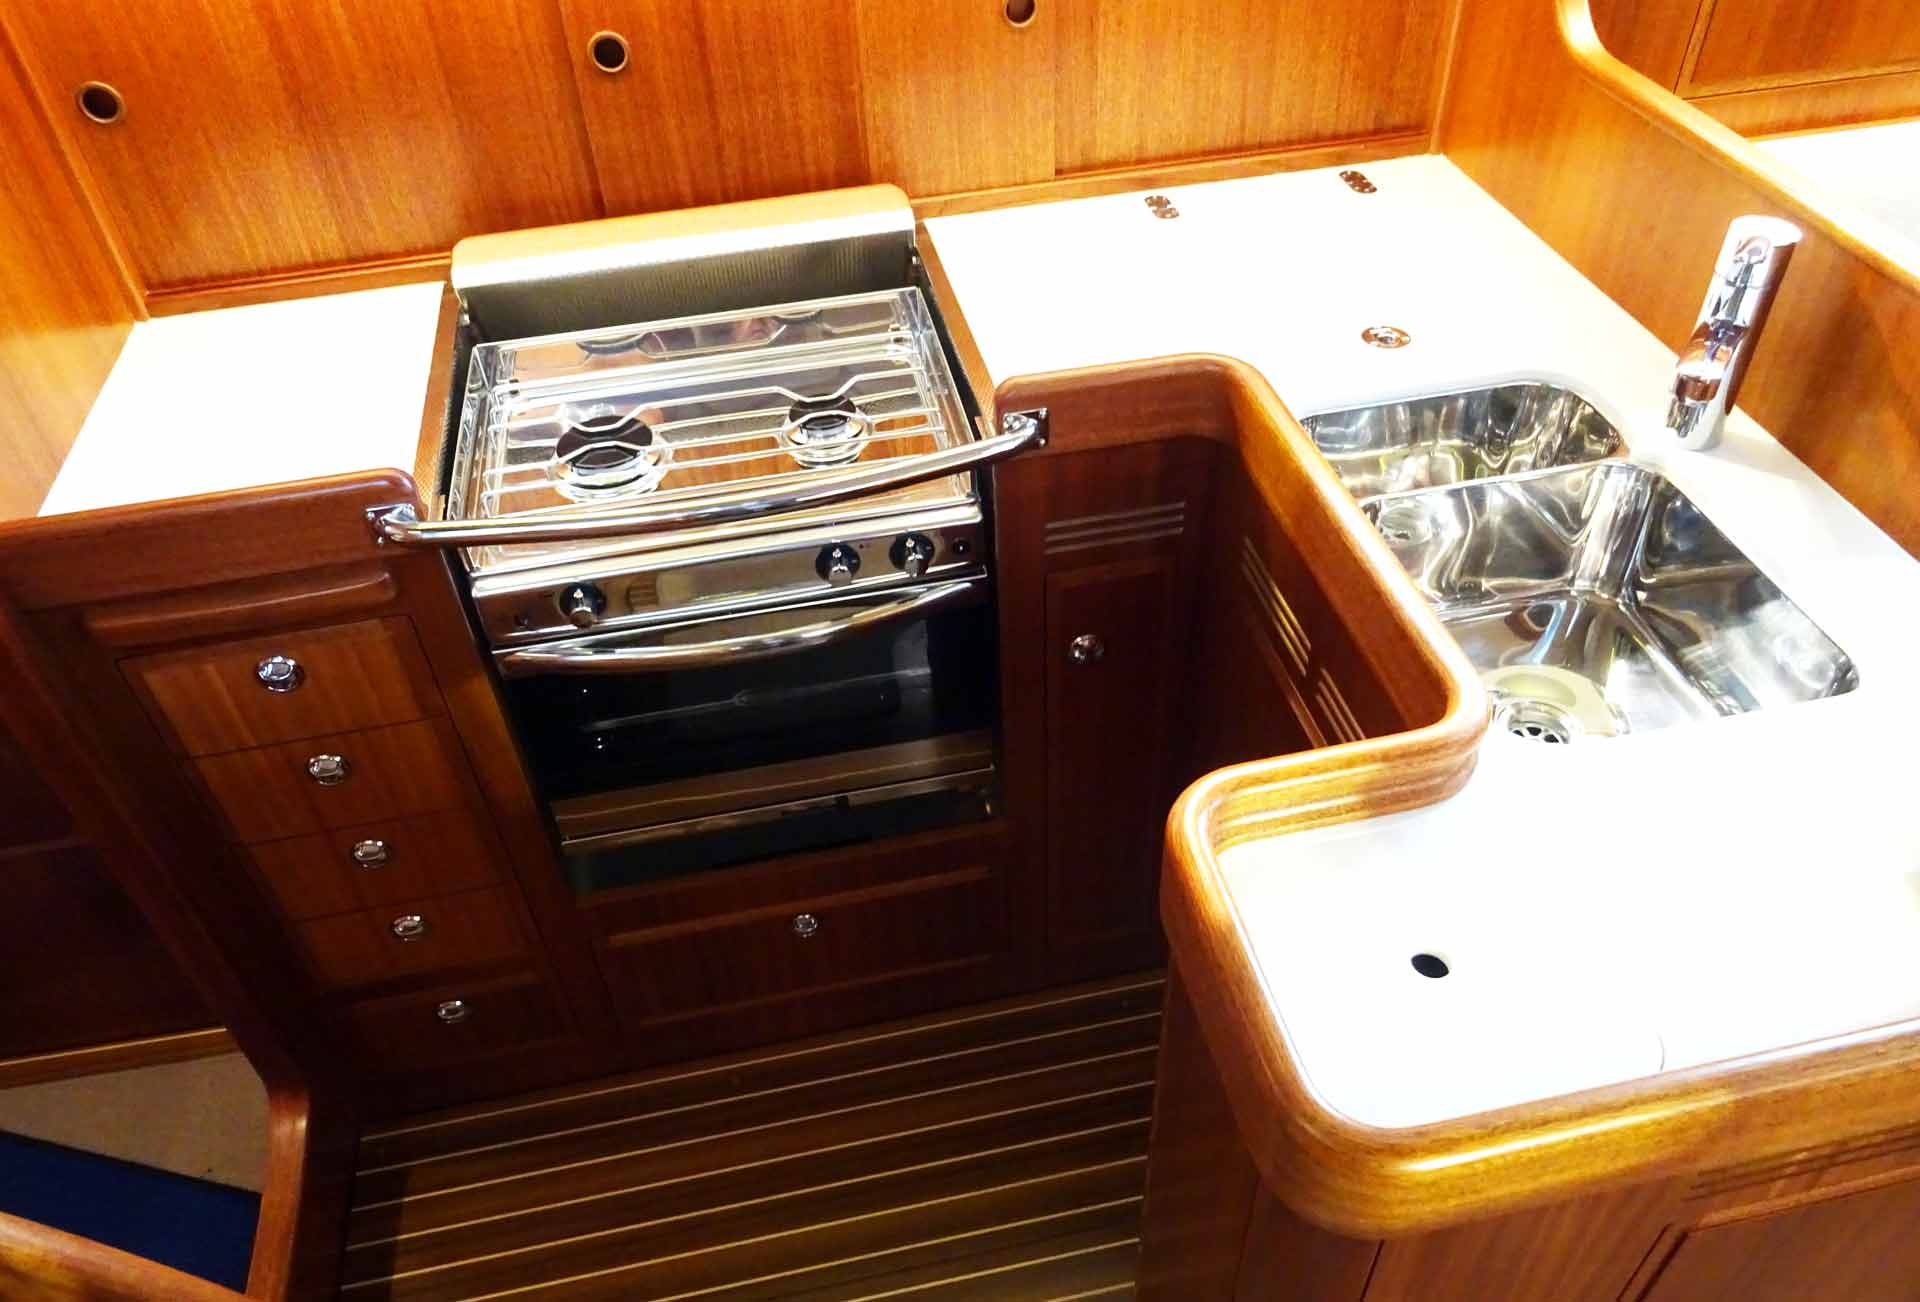 Perfect shaped and well fitted: The Galley of the Hallberg-Rassy 372